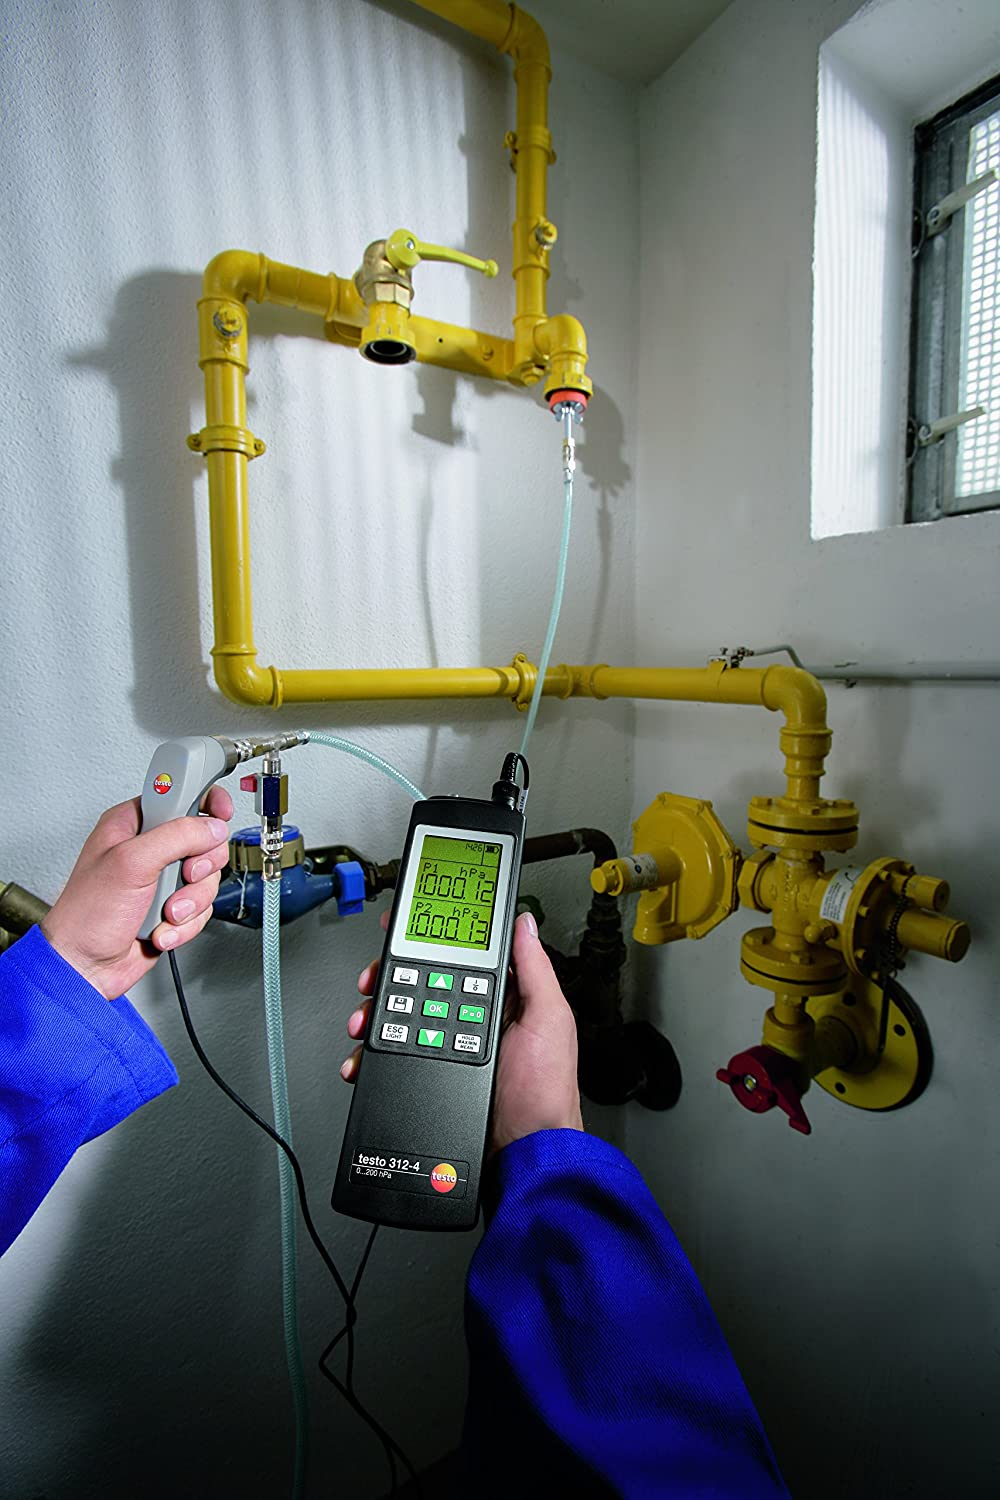 testo 312-4 Differential Pressure Meter up to 200 hPa